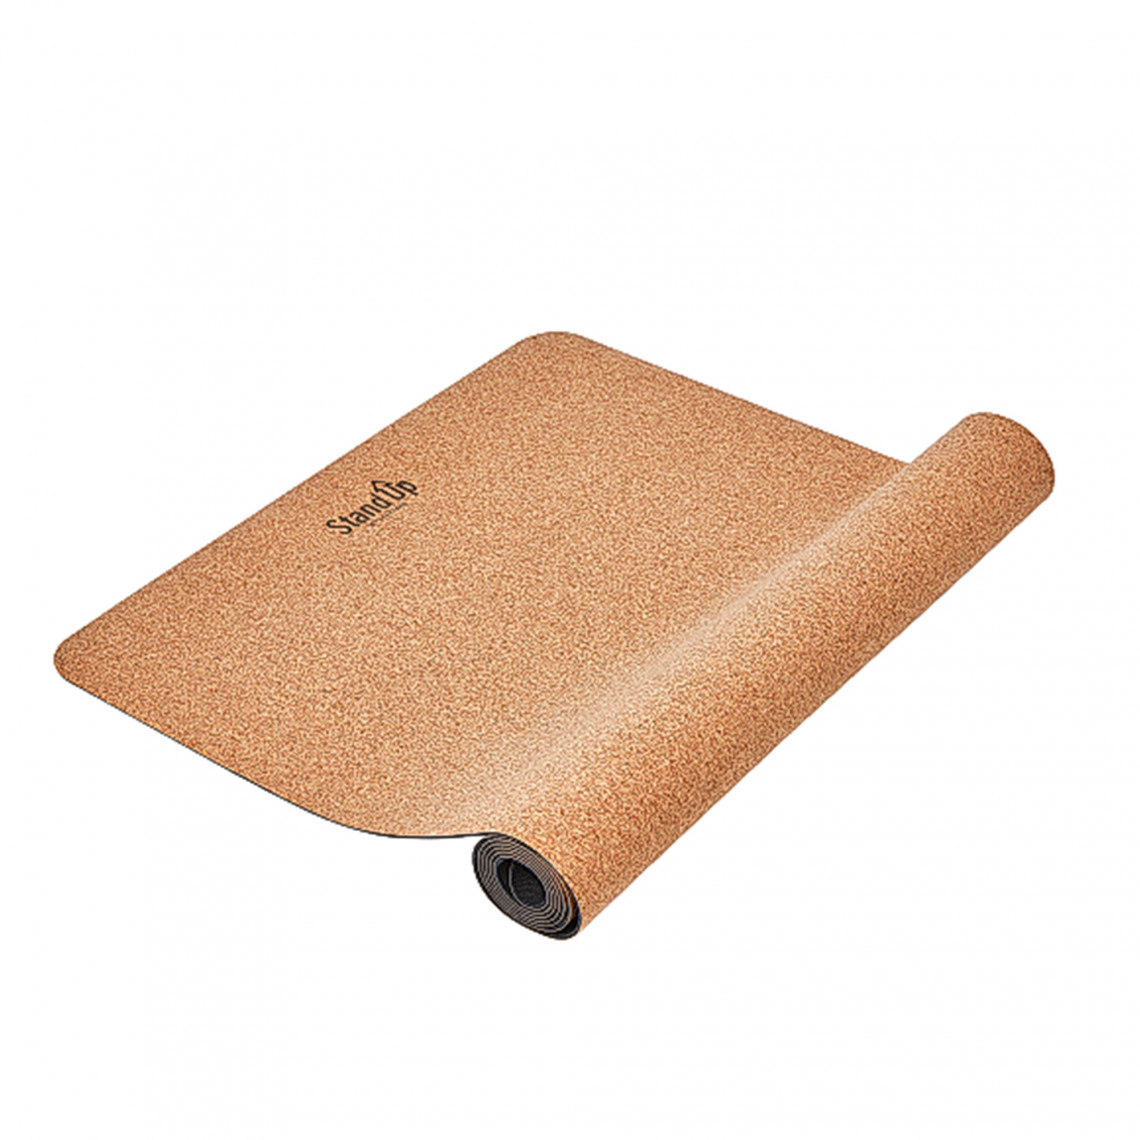 StandUp Active Exercise & Relax Mat